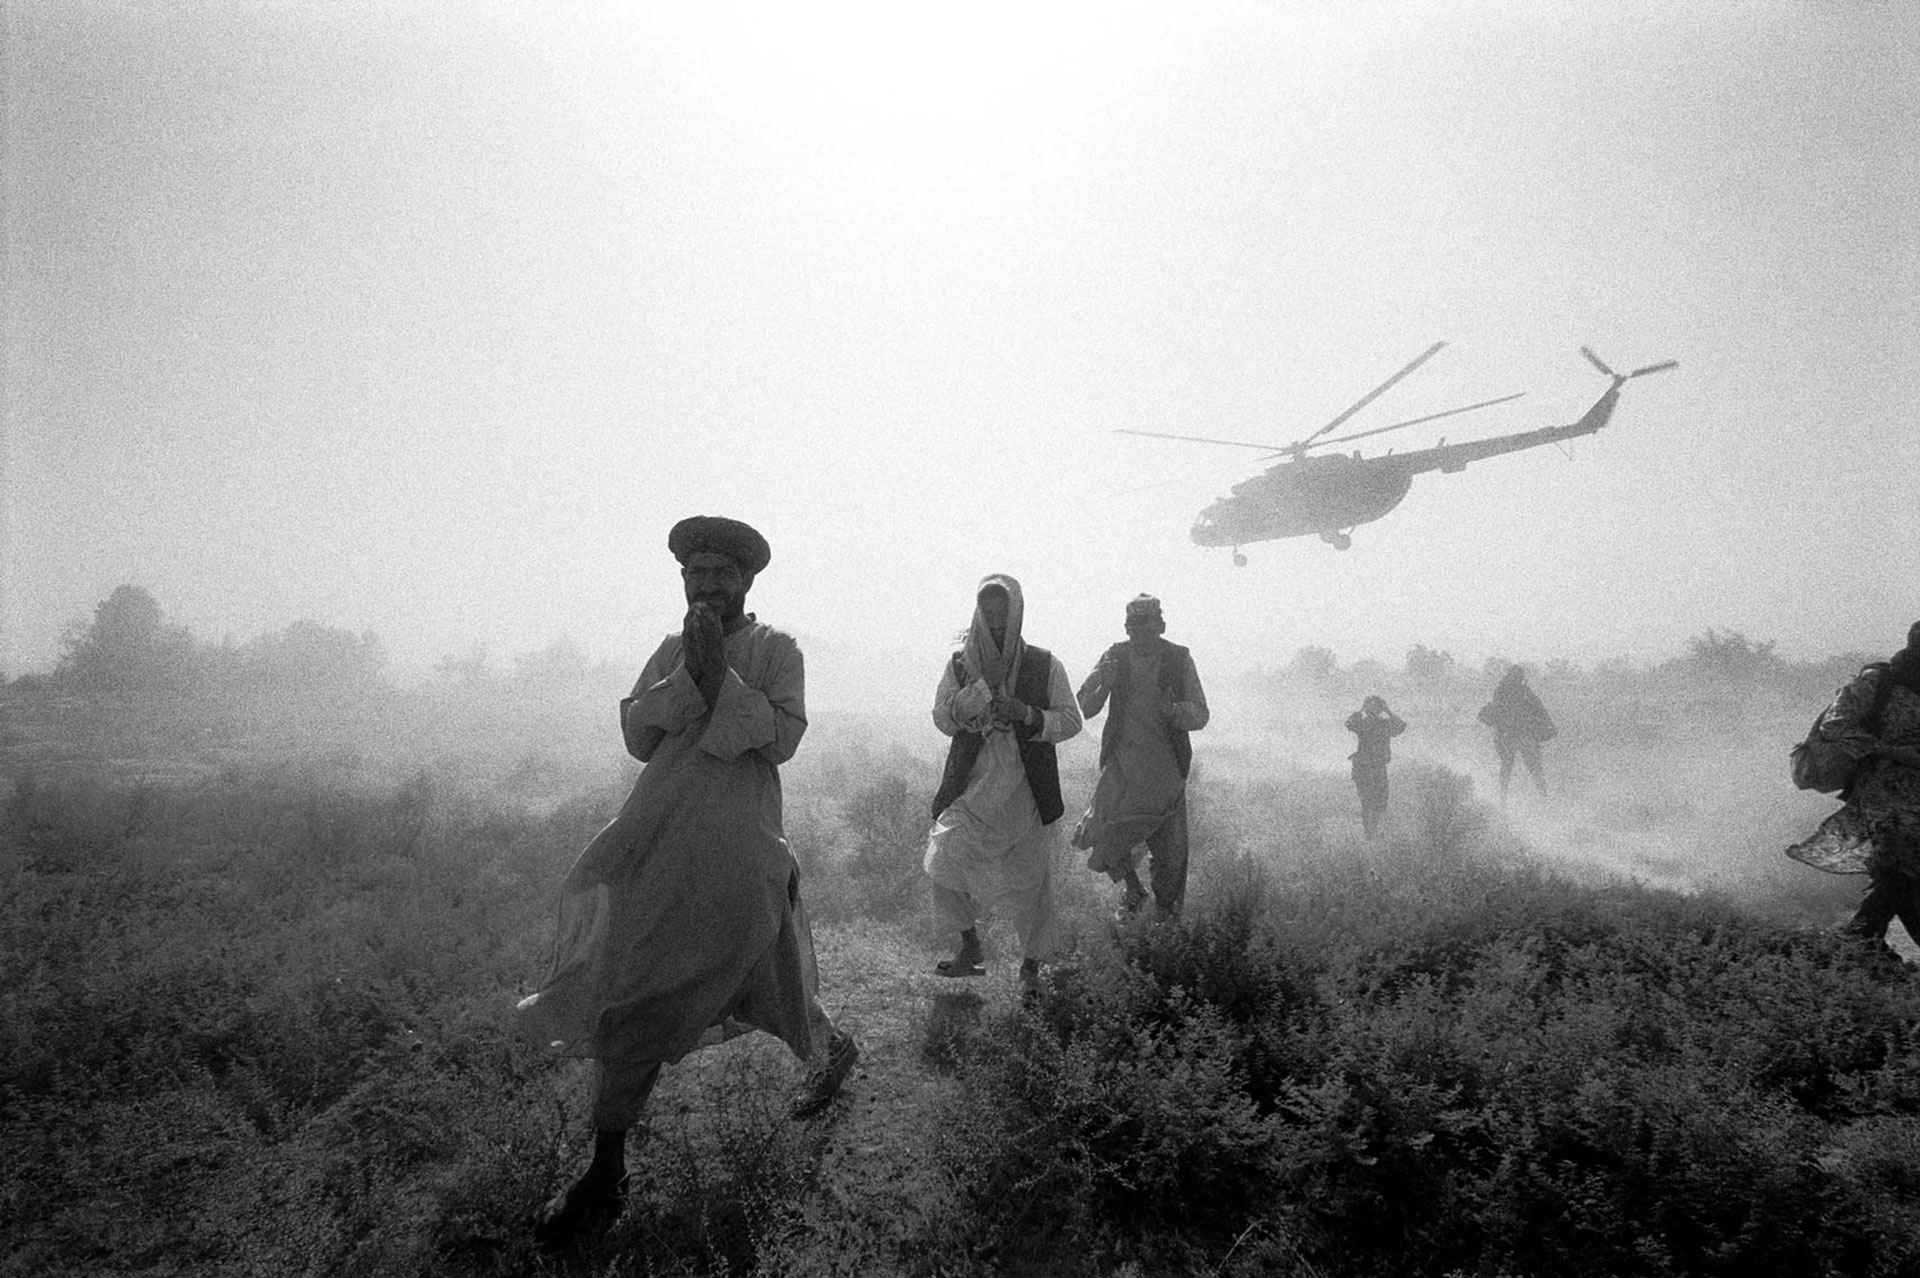 Jason Florio photography - black and white image of Afghani men walking away from a helicopter, which is taking off, in rural Afghanistan